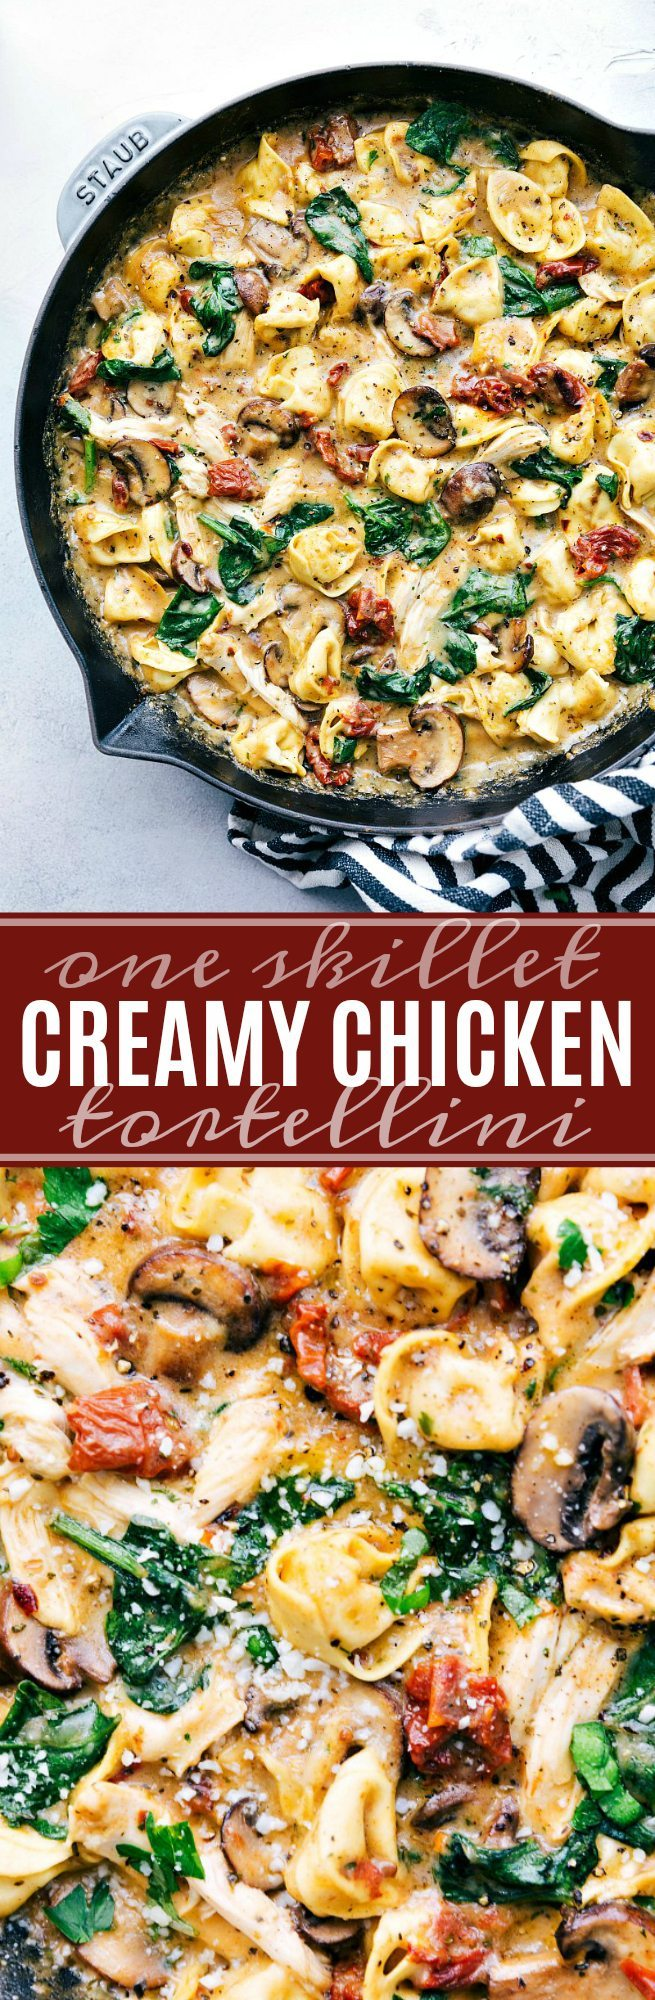 ONE SKILLET creamy chicken, sundried tomatoes, and tortellini. Healthier ingredients and all the flavor! via chelseasmessyapron.com #skillet #chicken #oneskillet #easy #quick #dinner #tomato #sundried #tortellini #30minute #dinner #recipe #kidfriendly